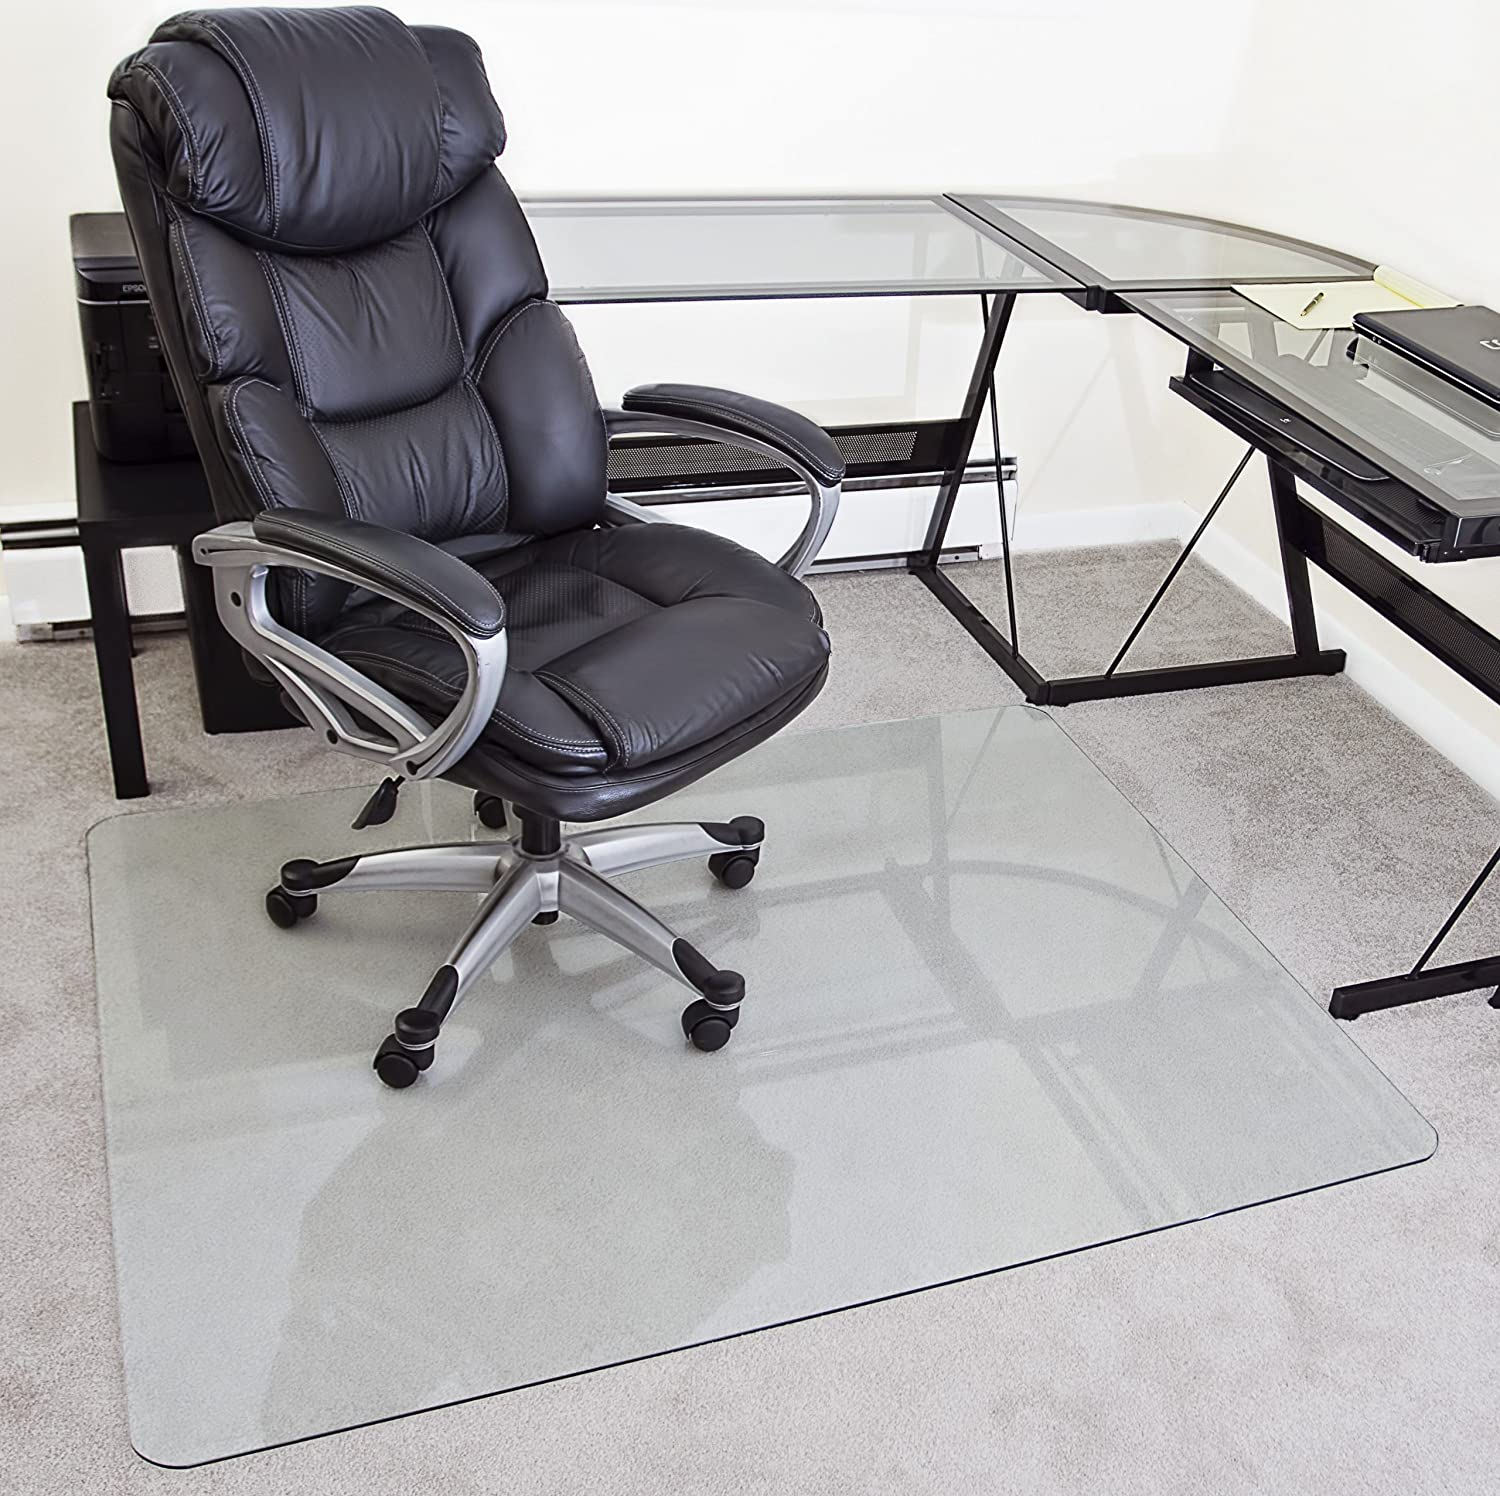 amazon com myglassmat 48 x 60 inch tempered glass chair mat for